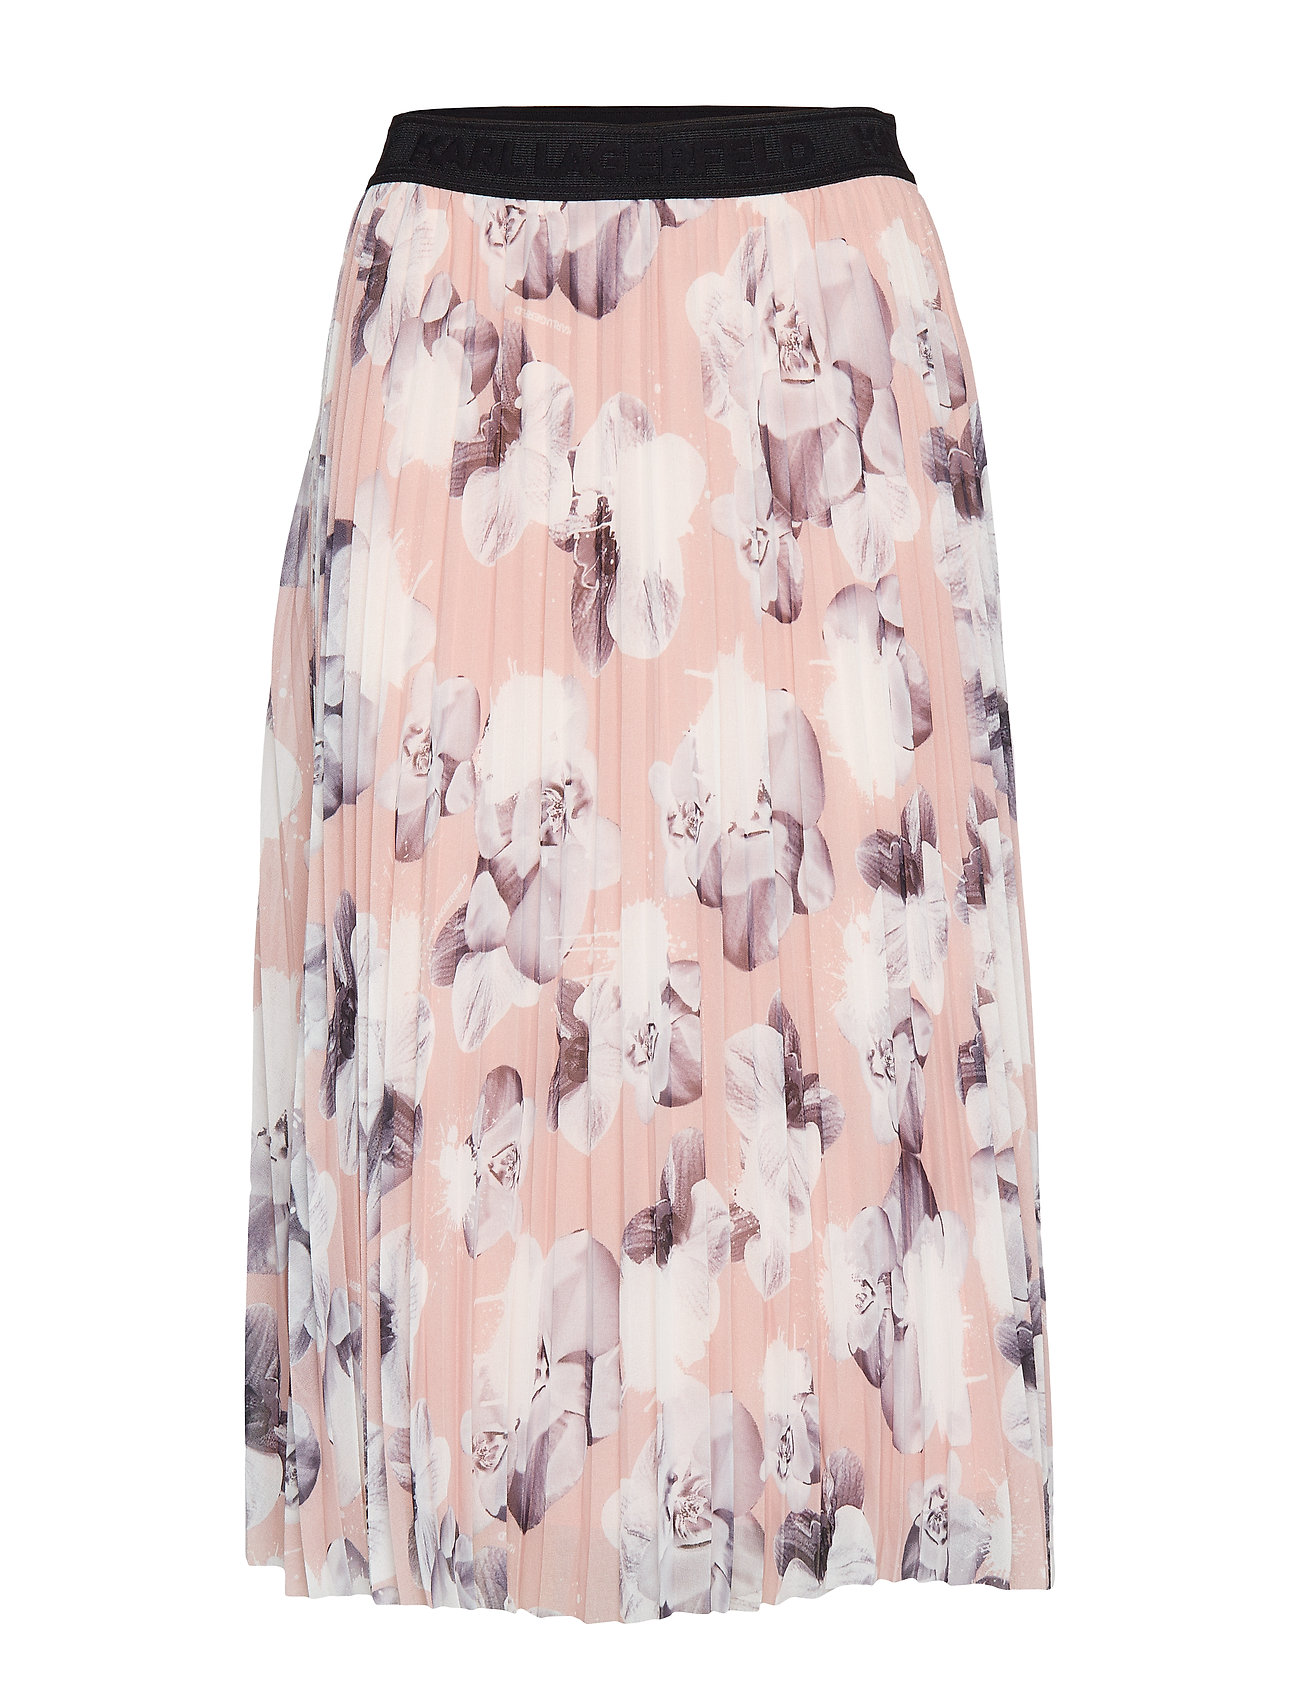 Orchid Print Pleated Skirt